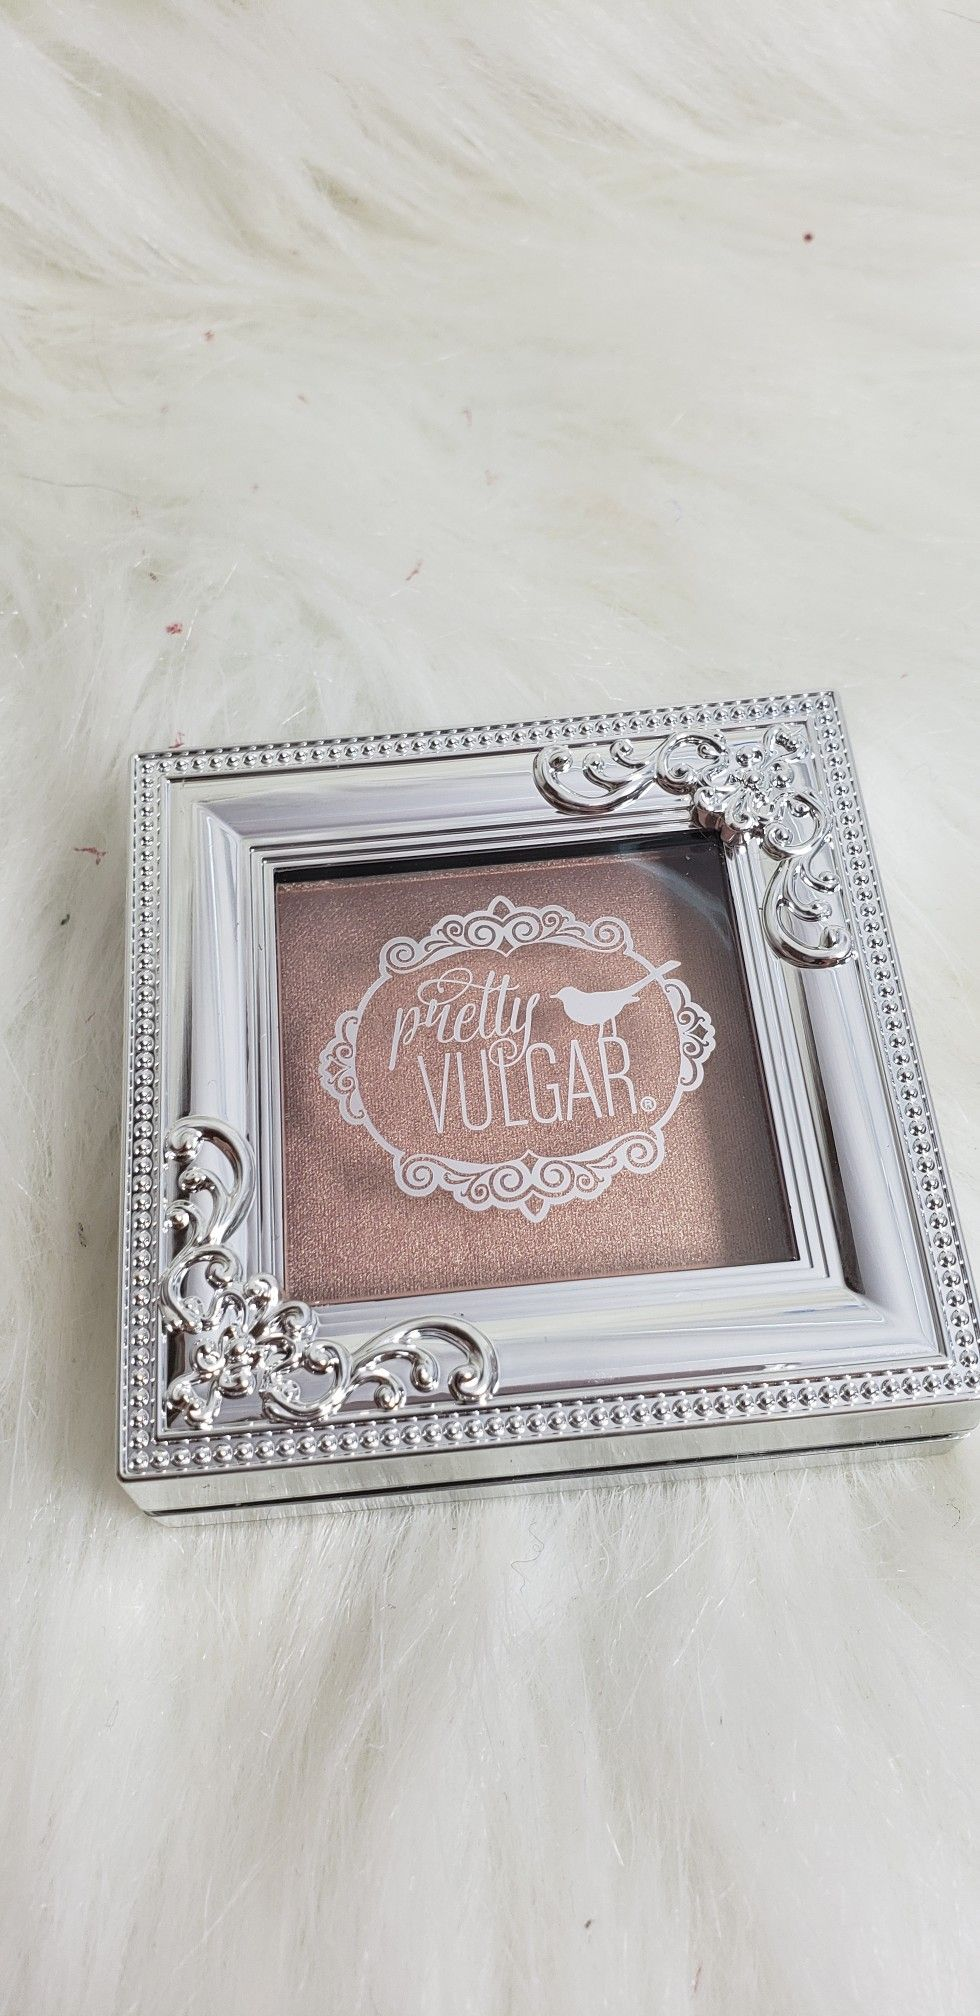 Pin by yessyt on boxycharmxtoofaced decor home decor